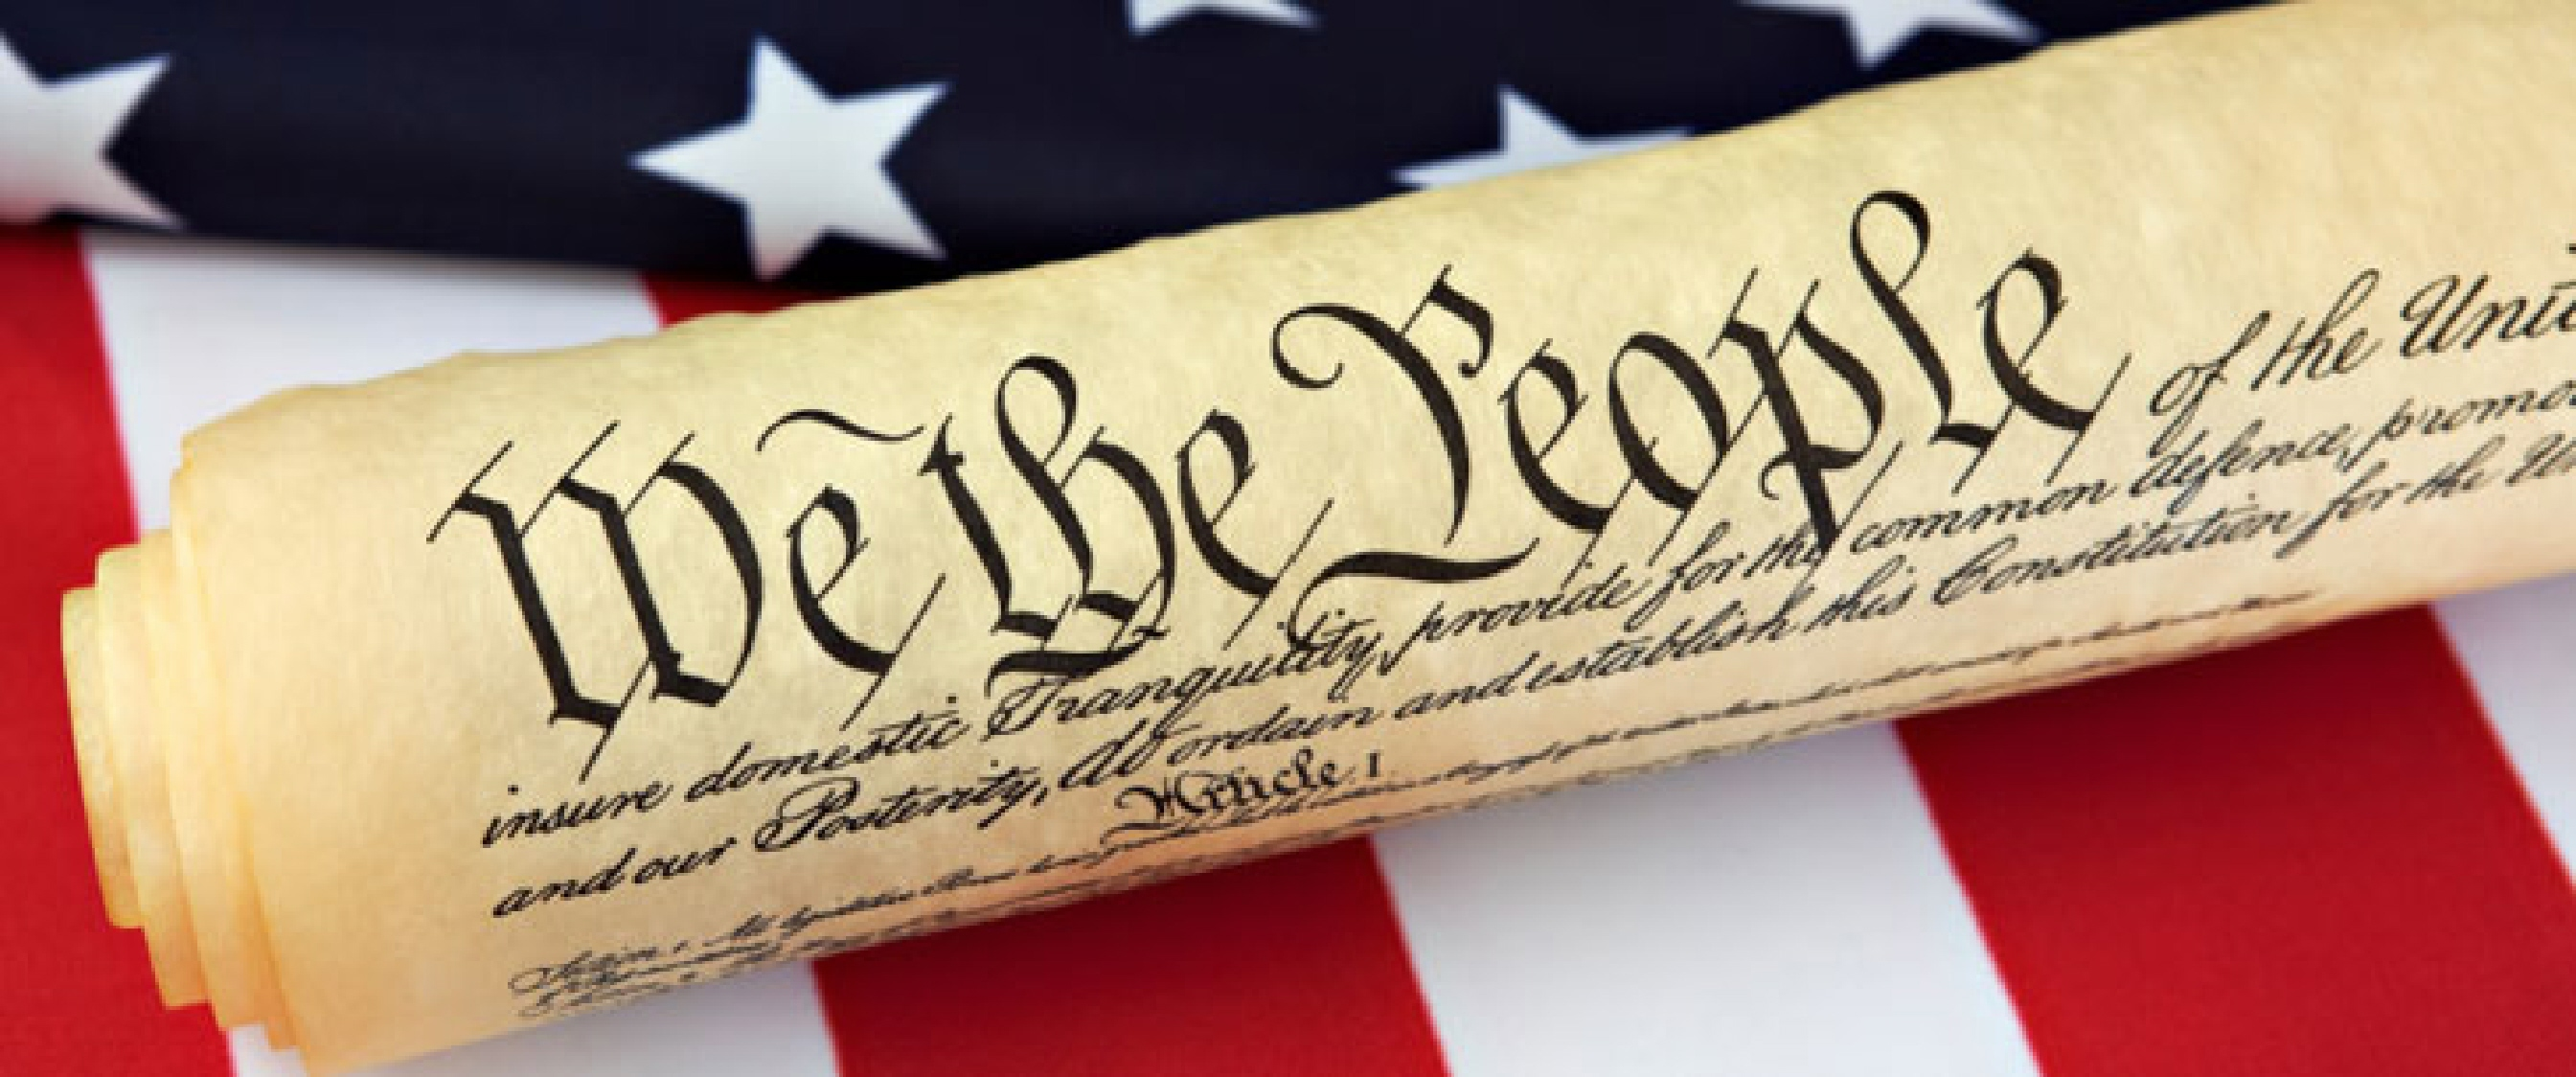 July 4th: We the people... are the constitution of America's Greatness.